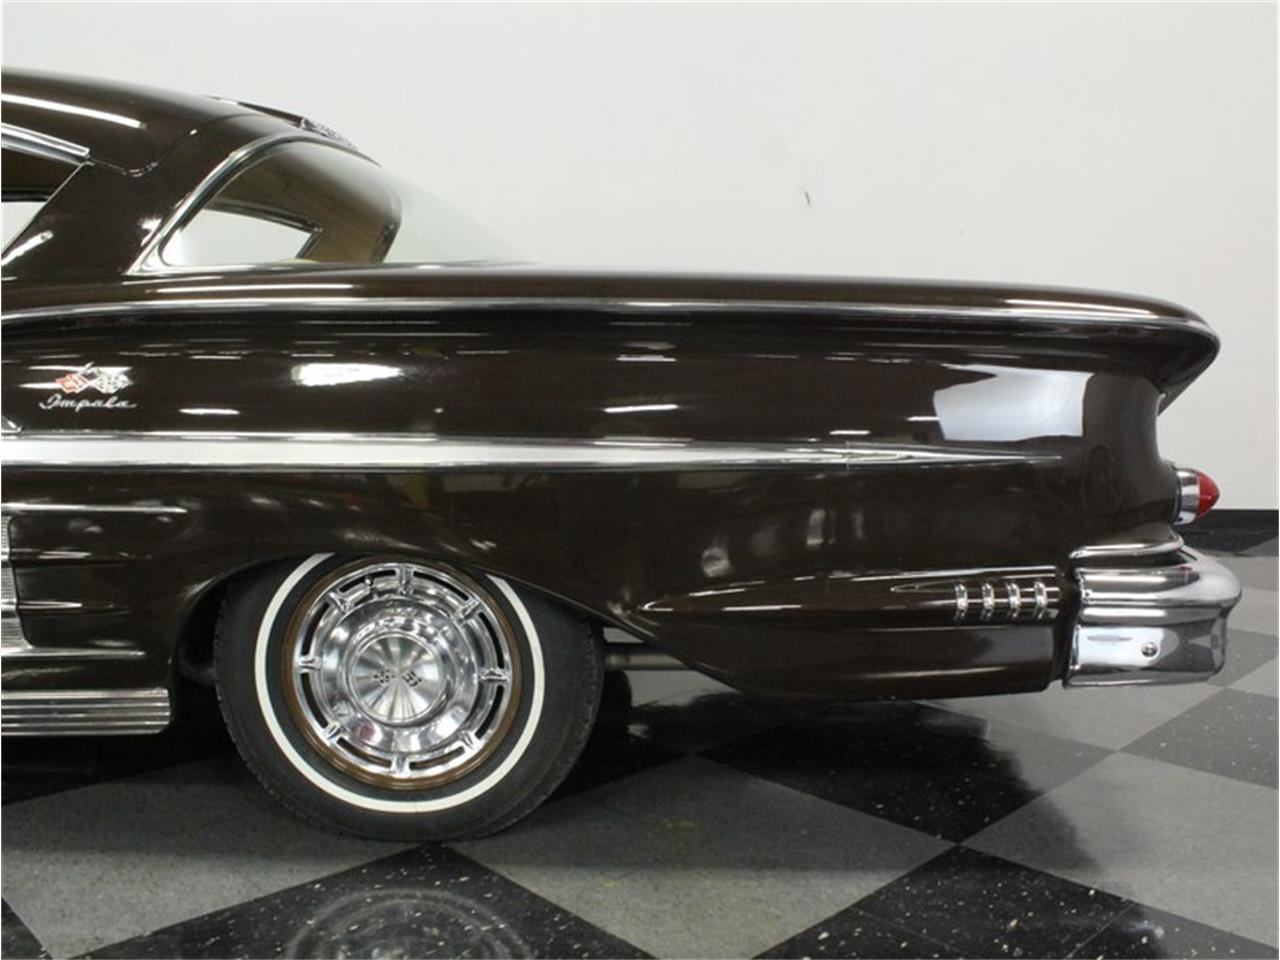 Large Picture of '58 Chevrolet Impala - $44,995.00 Offered by Streetside Classics - Dallas / Fort Worth - HX8B